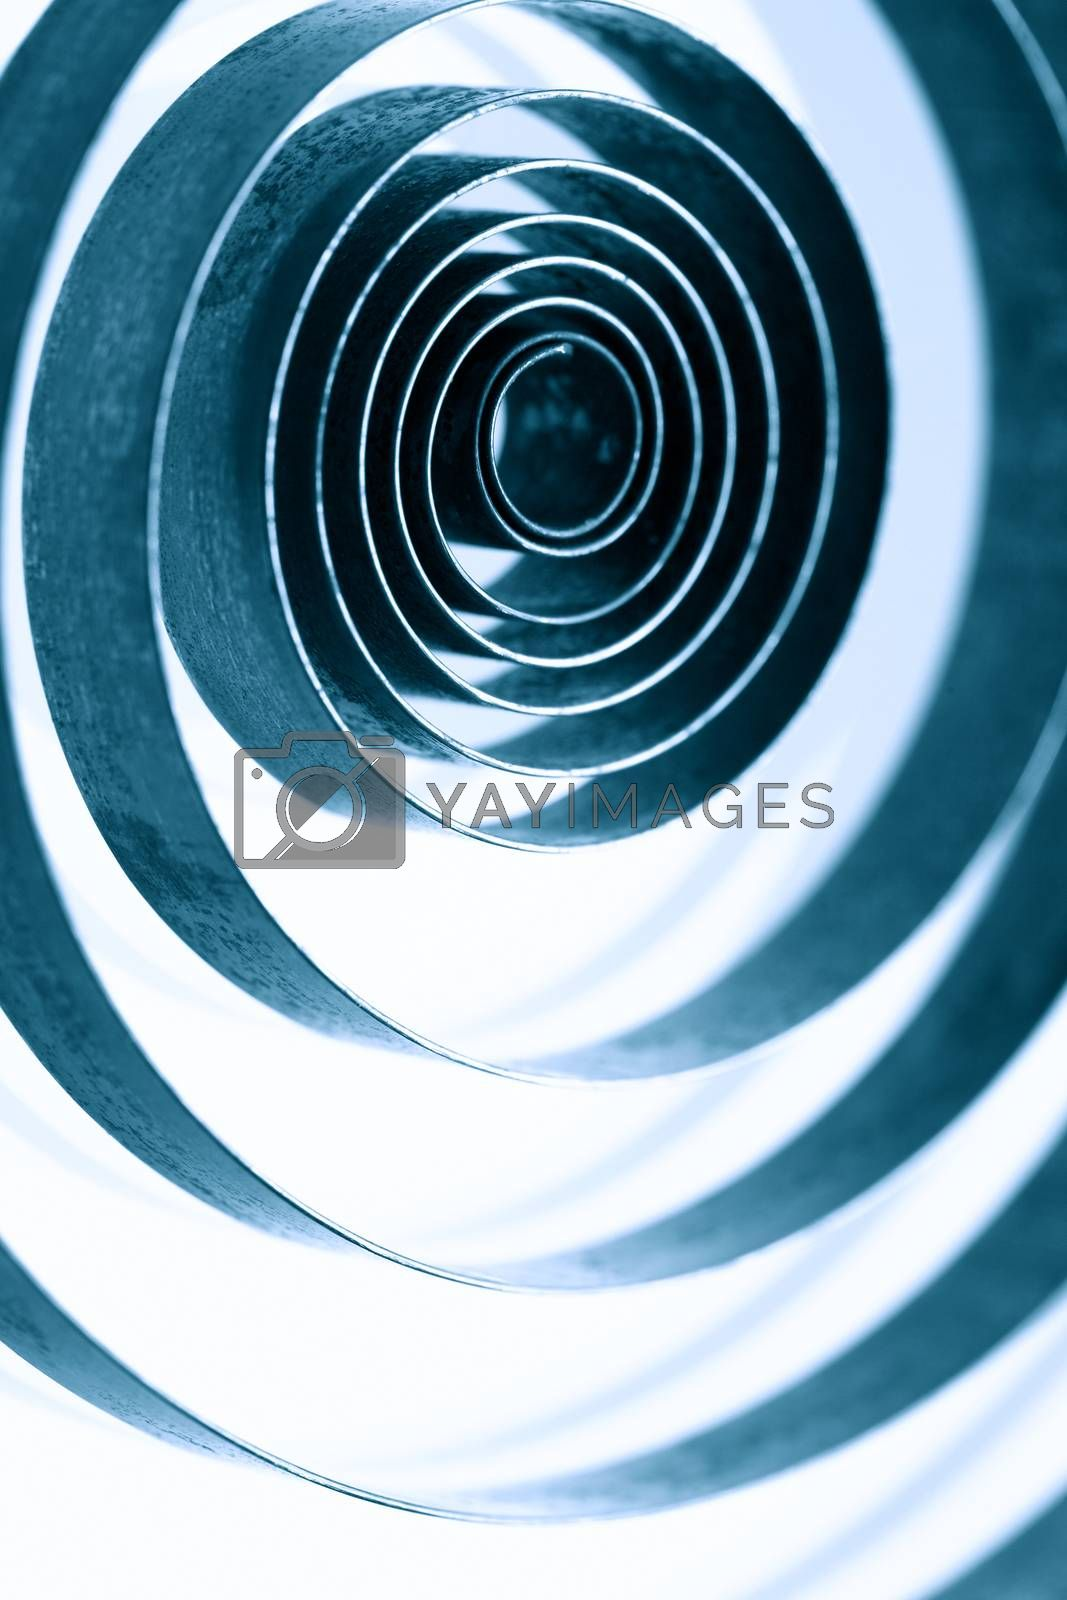 Royalty free image of Spirals Concept Abstract by kvkirillov